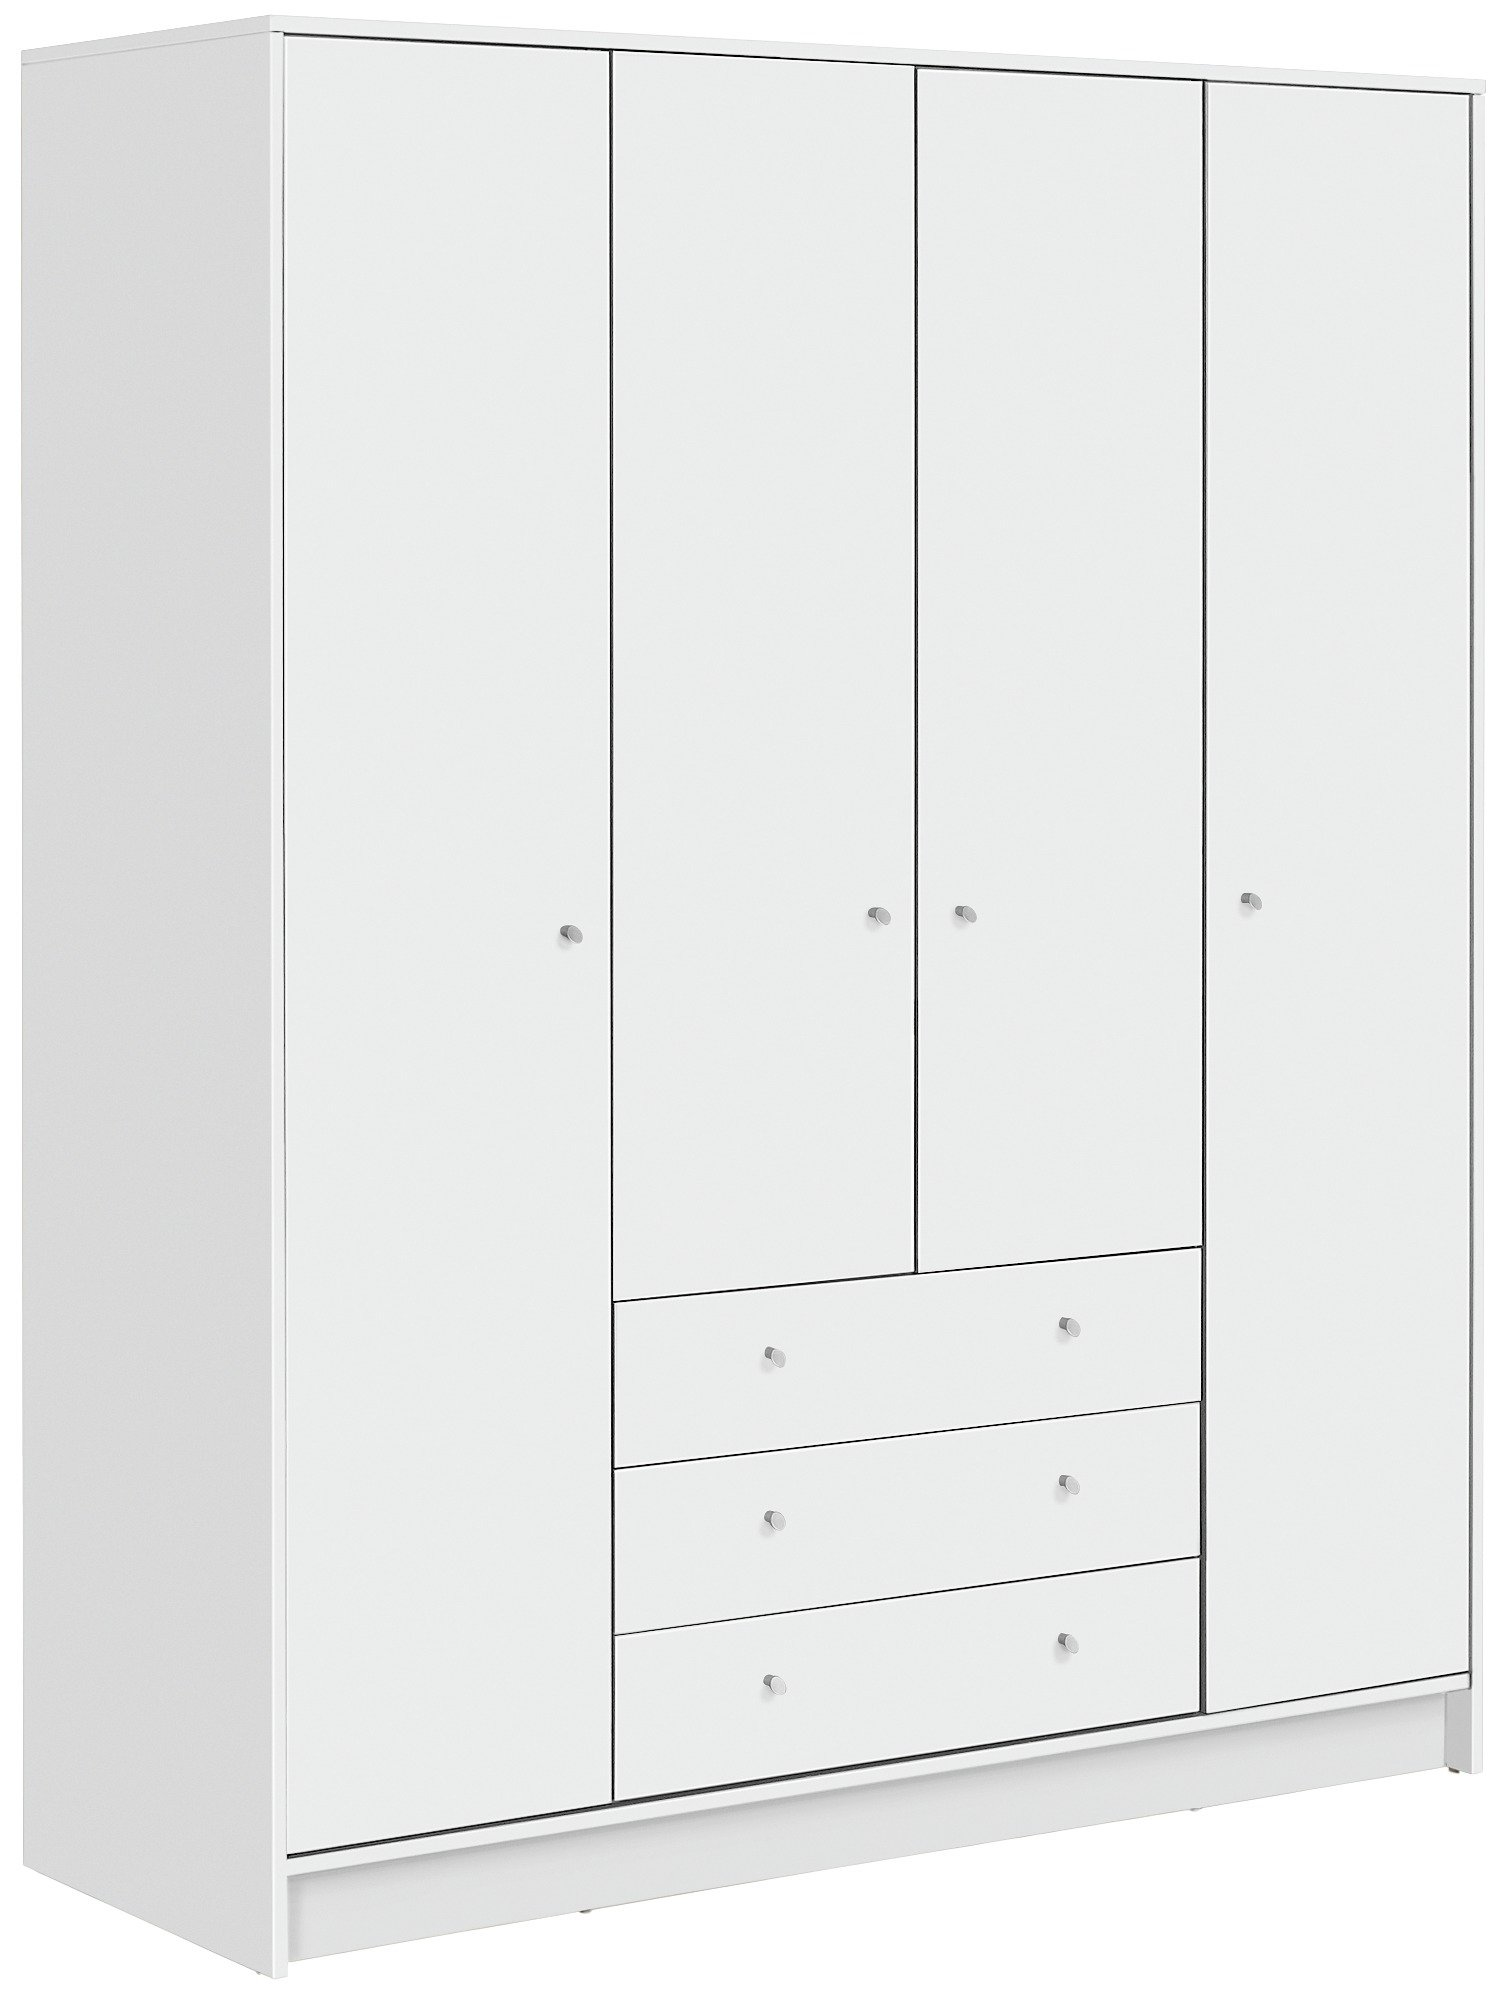 Argos Home New Malibu 4 Door 3 Drawer Wardrobe